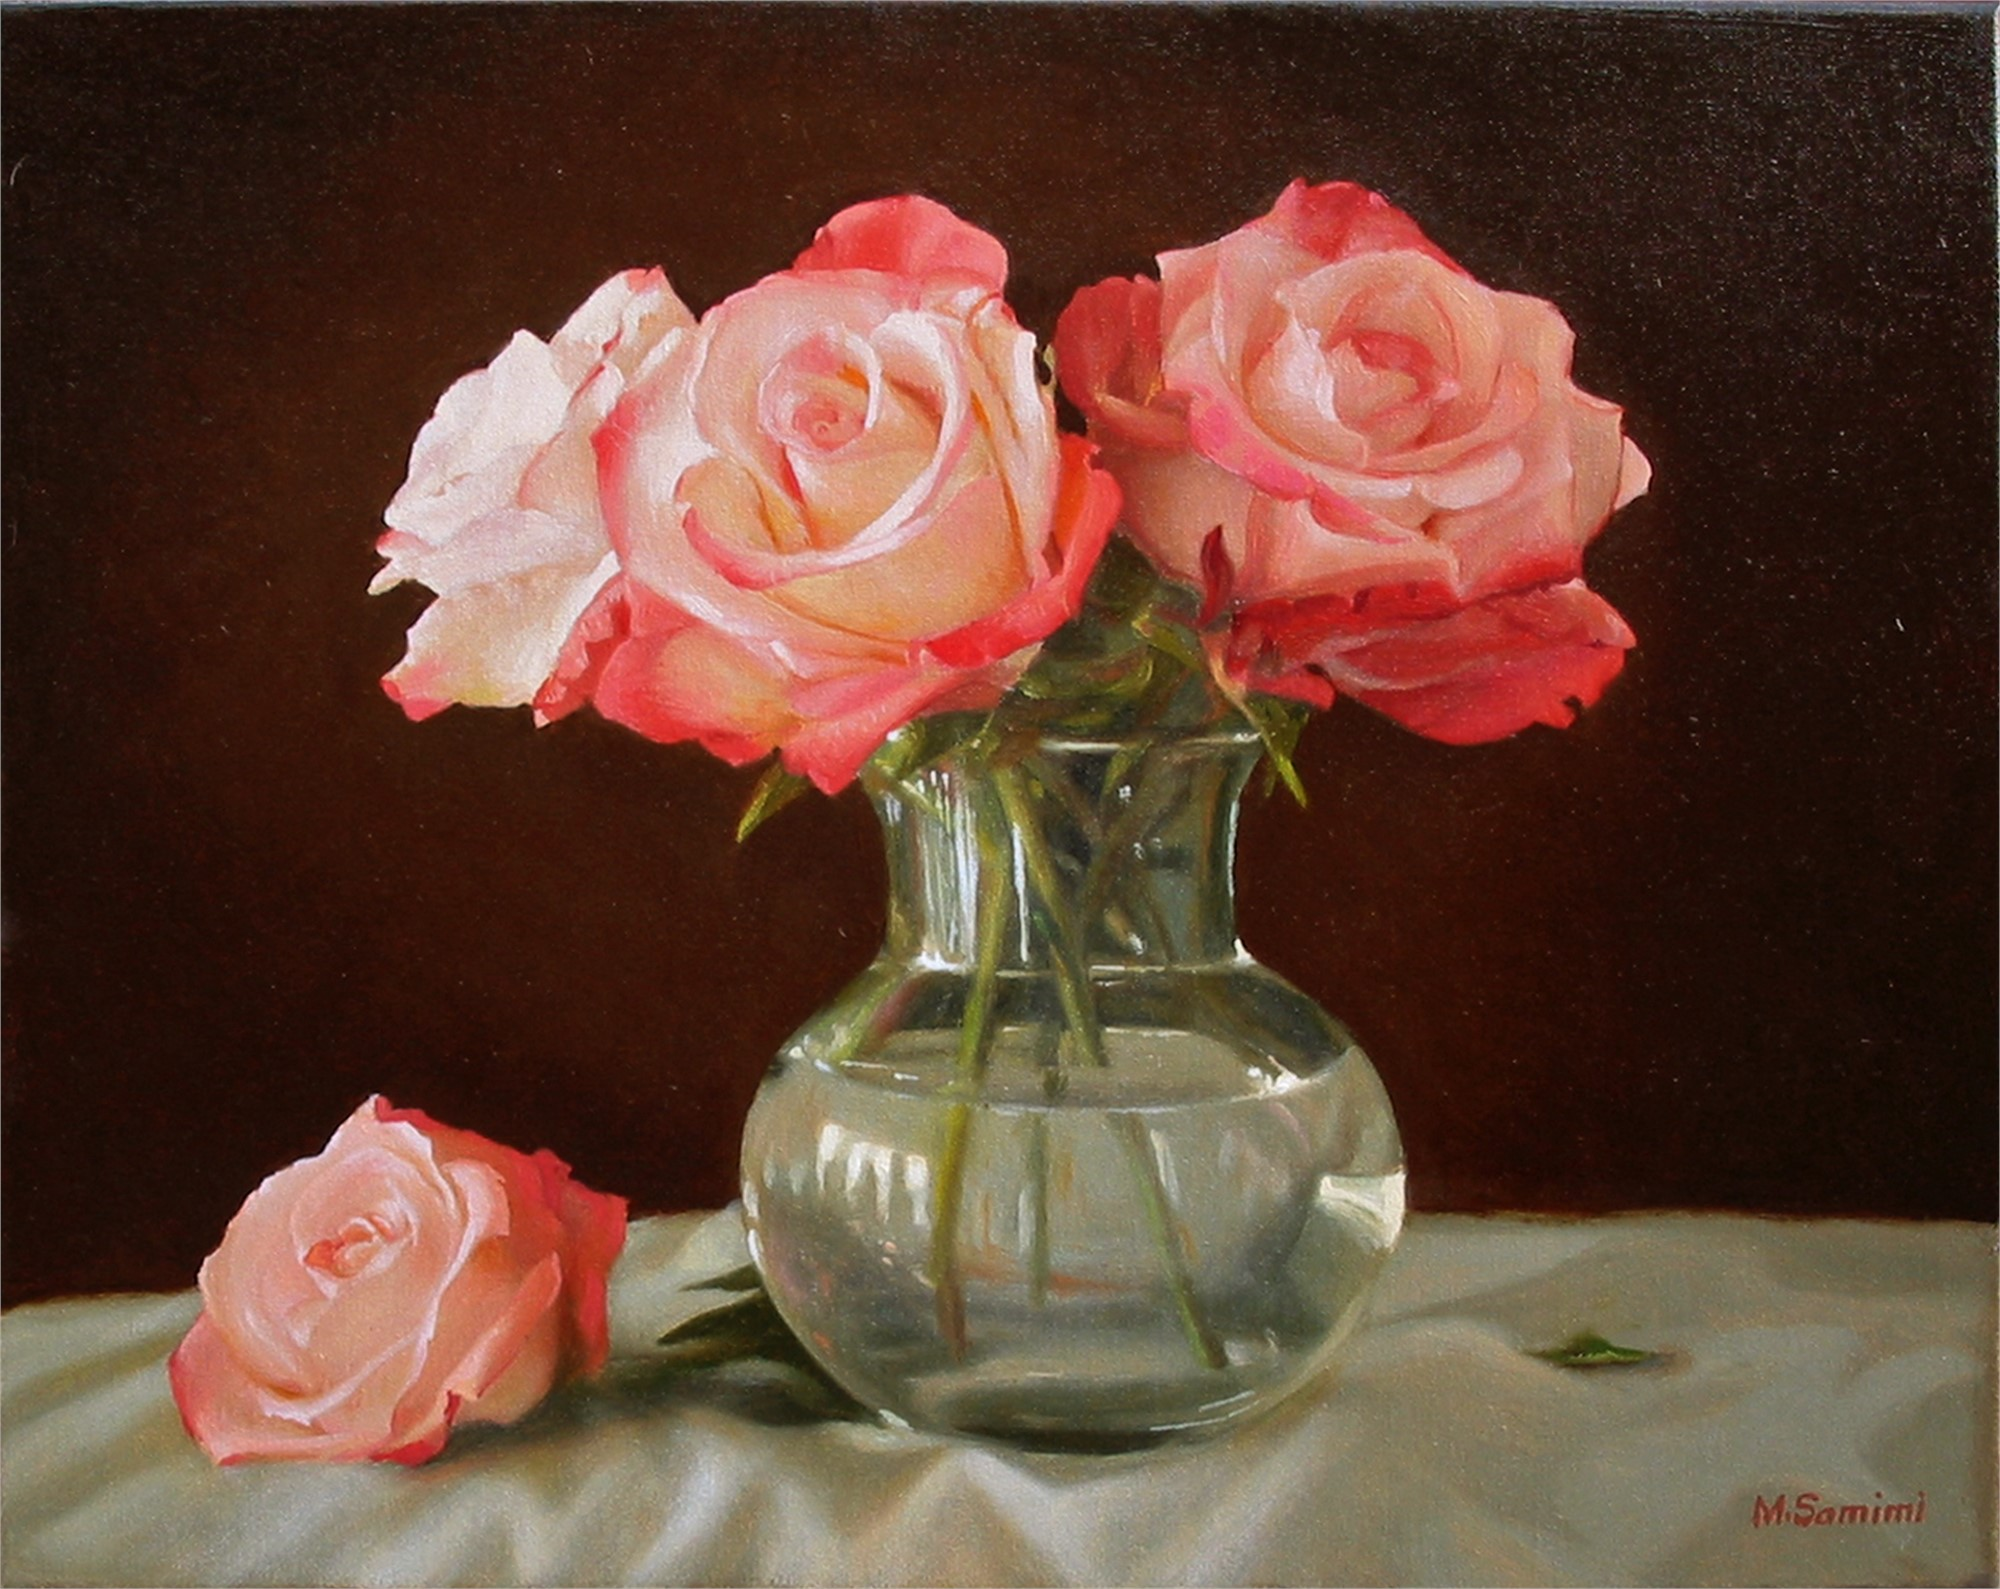 Roses in a Glass Vase by SAMIMI